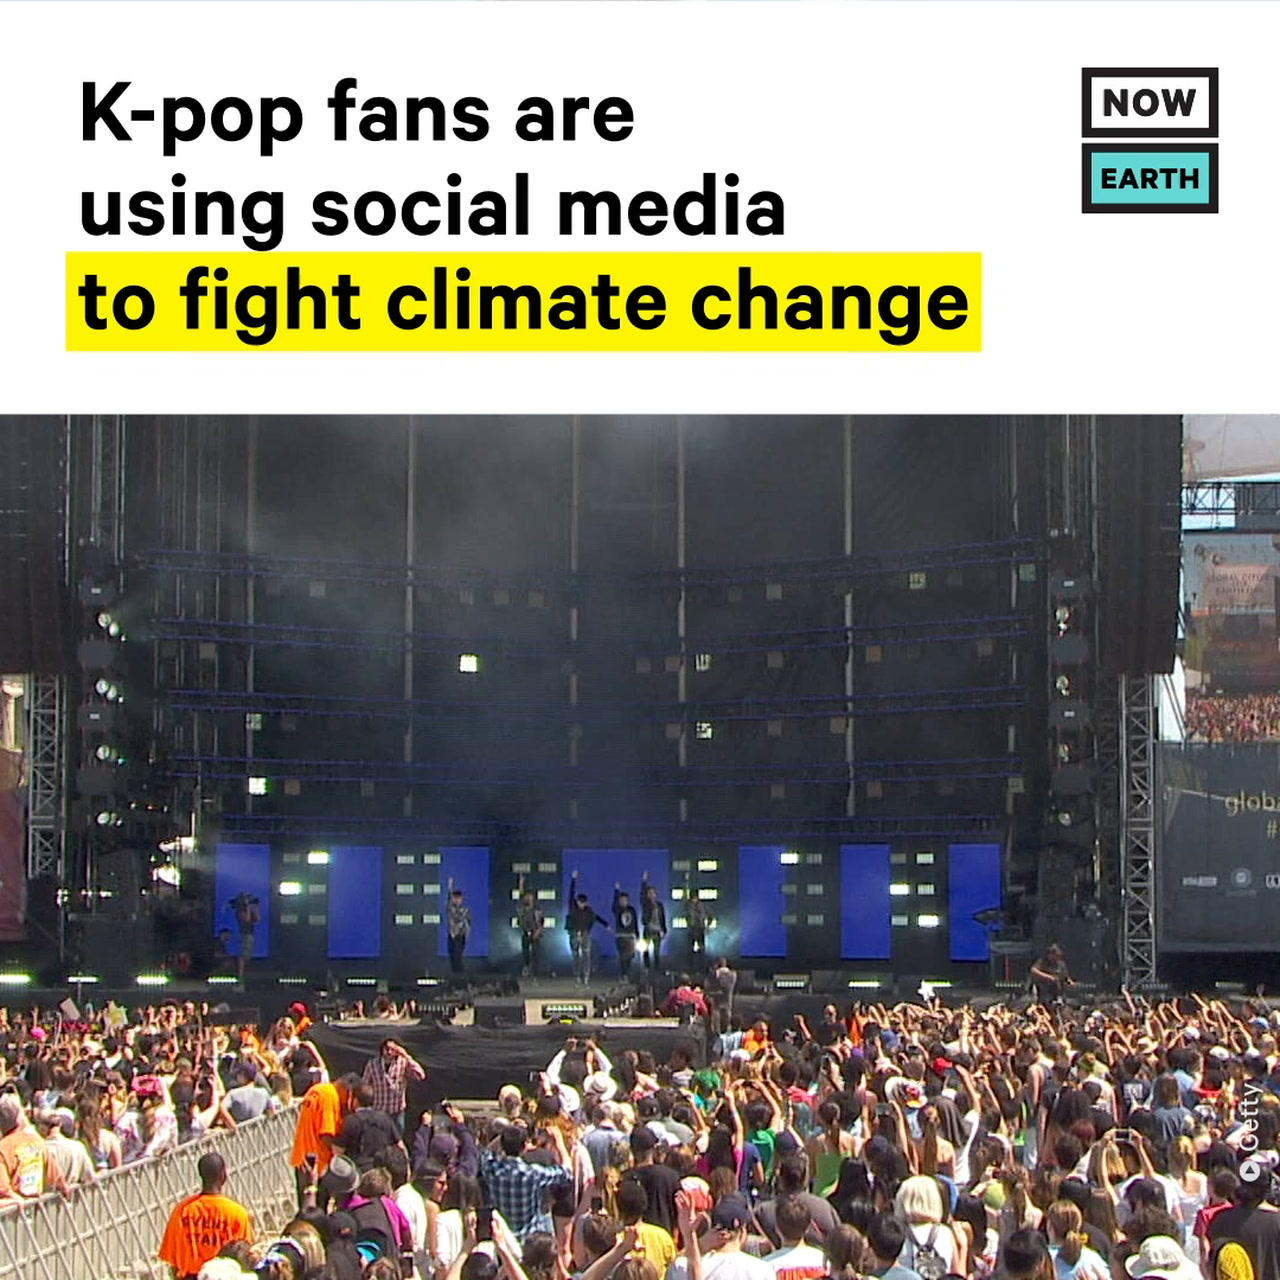 K-pop Fans Use Social Media to Fight Climate Change